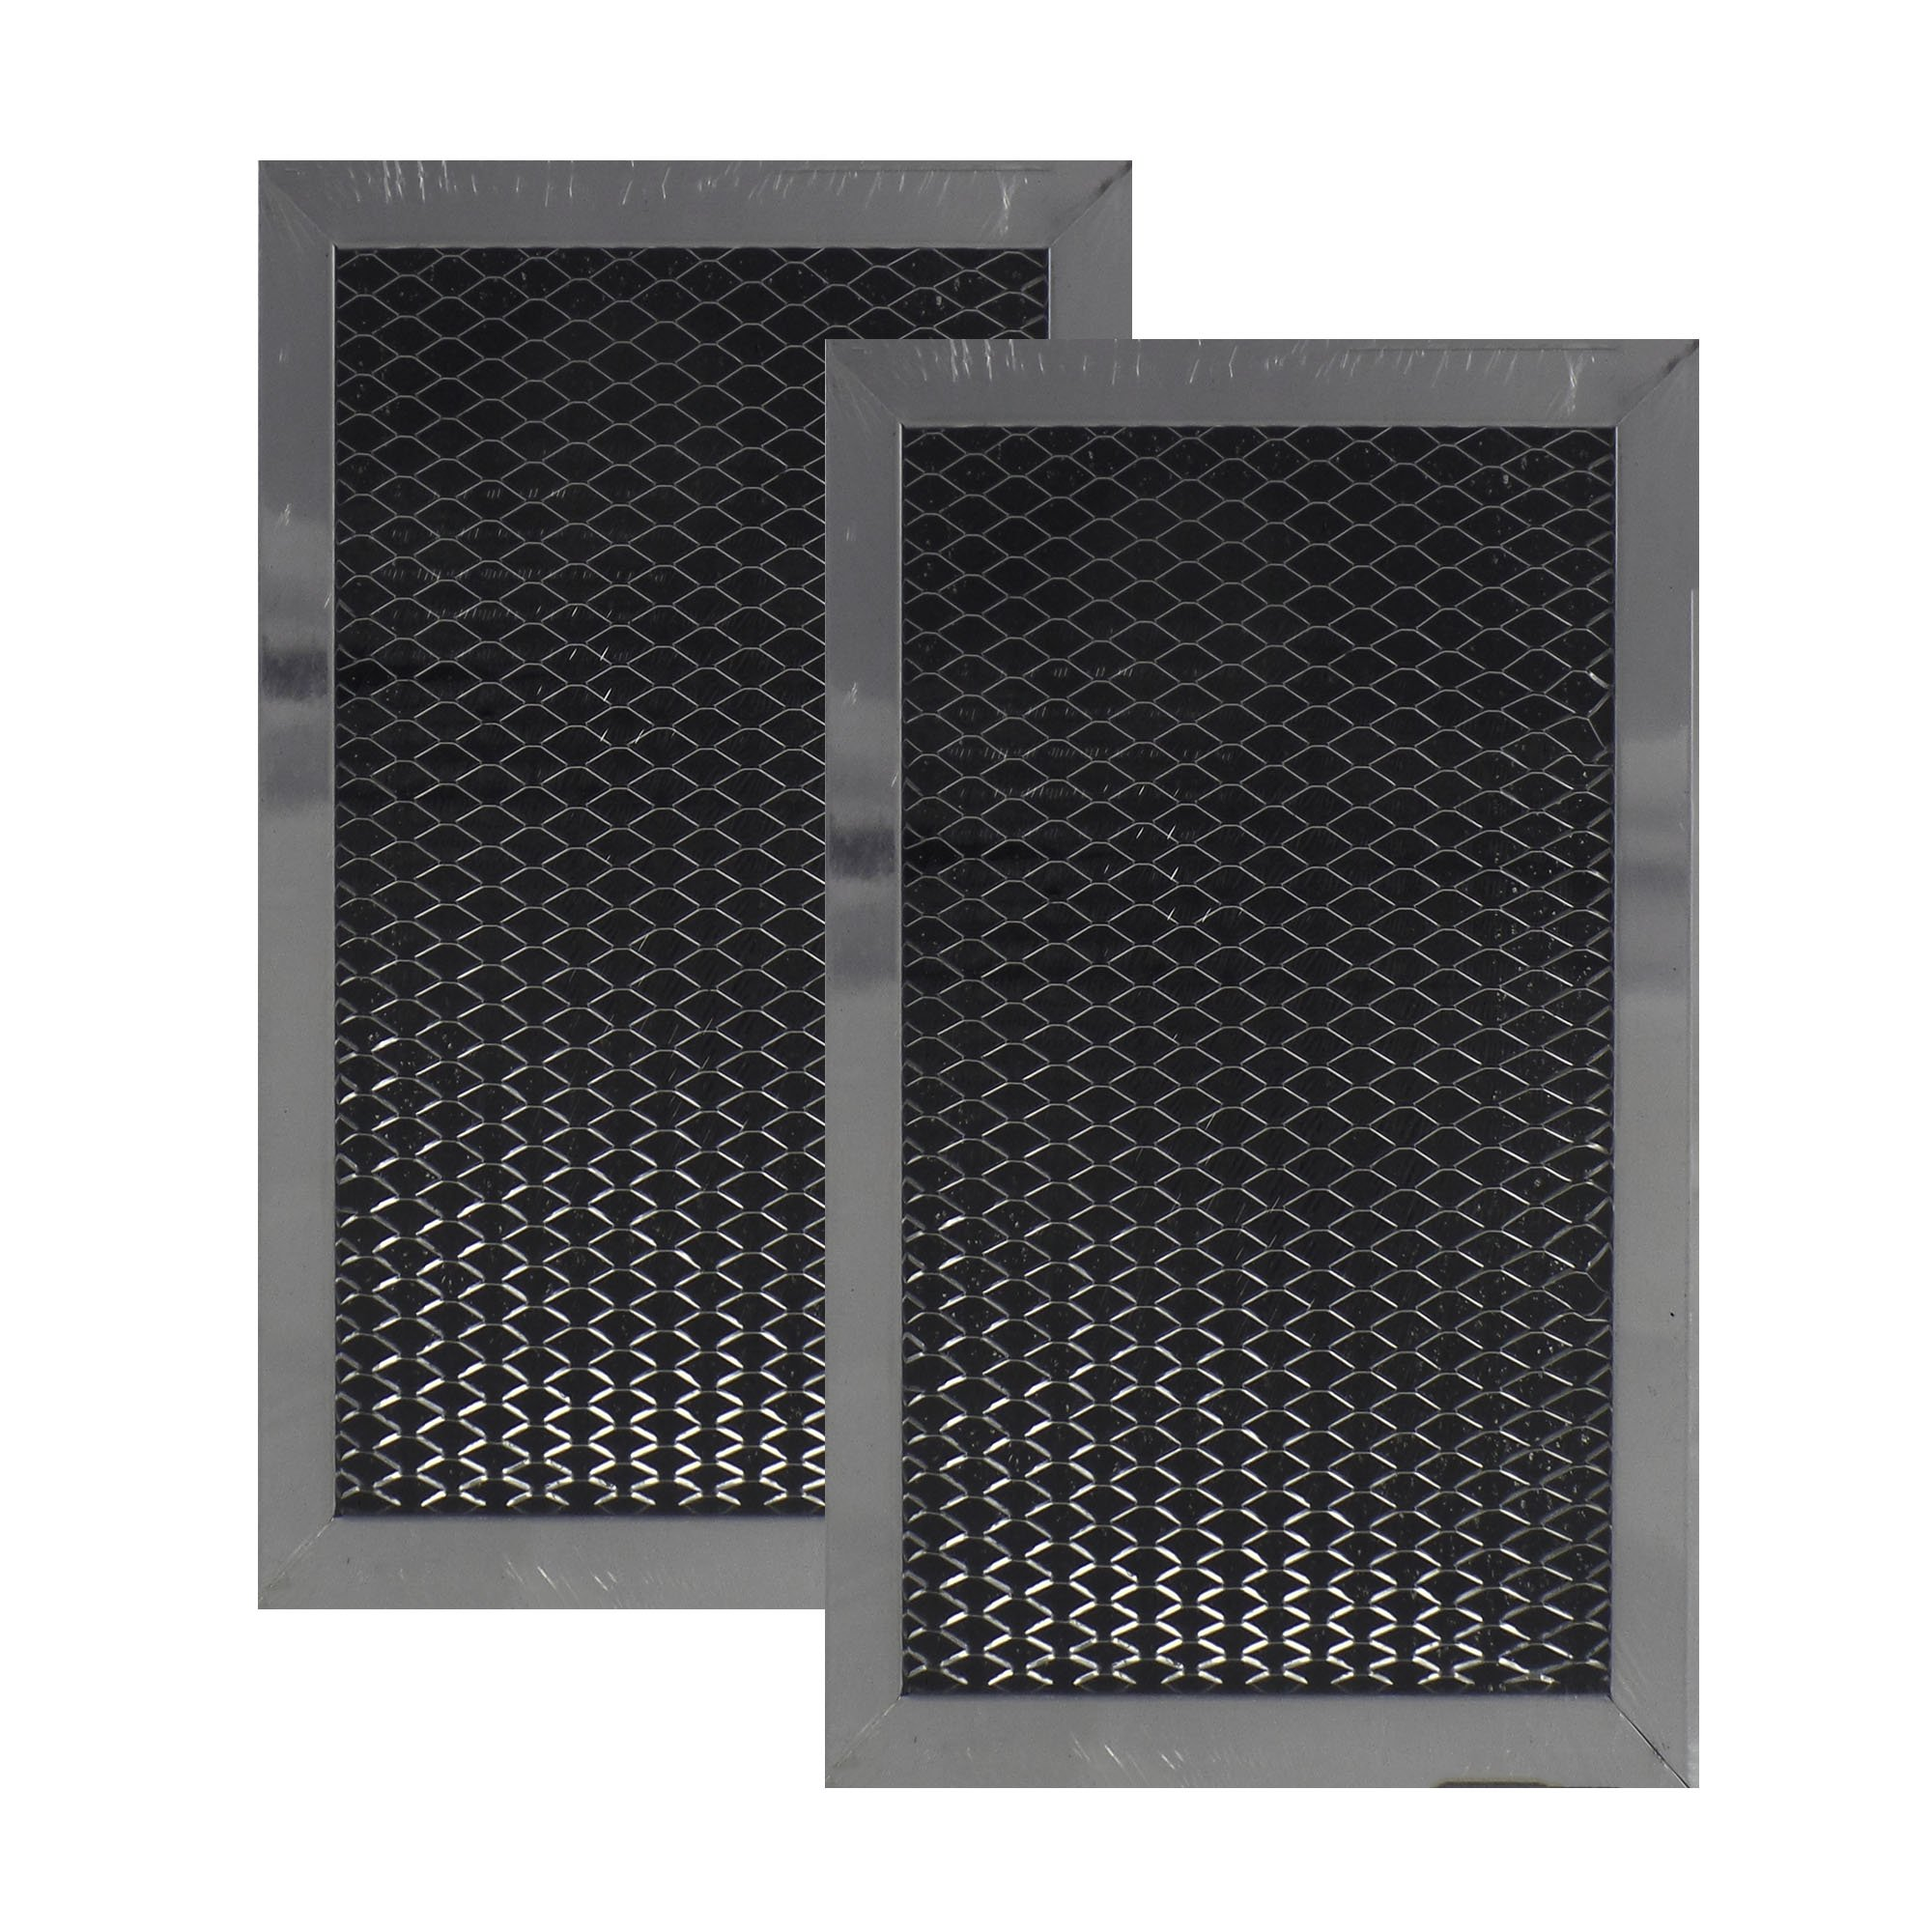 Air Filter Factory 2 PACK Compatible Replacement For LG 5230W1A011C Microwave Oven Charcoal Carbon Filter by Air Filter Factory